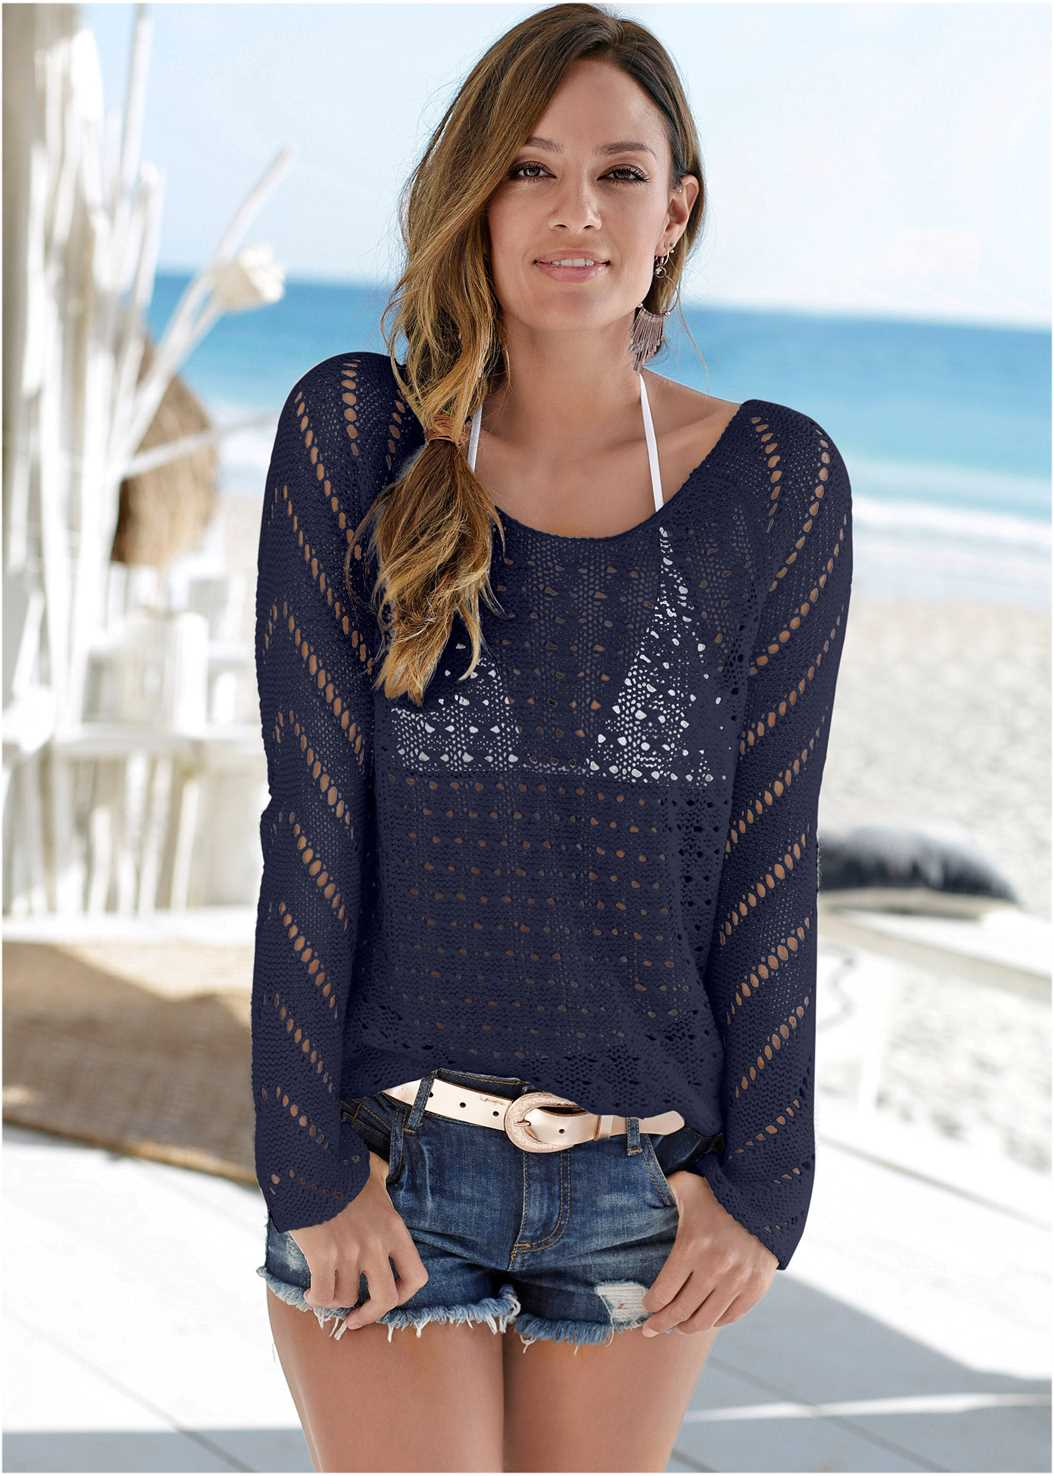 Open Knit Sweater,Basic Cami Two Pack,Triangle String Bikini Top,Strapless Bra With Geo Lace,Triangle Hem Jeans,Distressed Jean Shorts,Rhinestone Thong Sandal